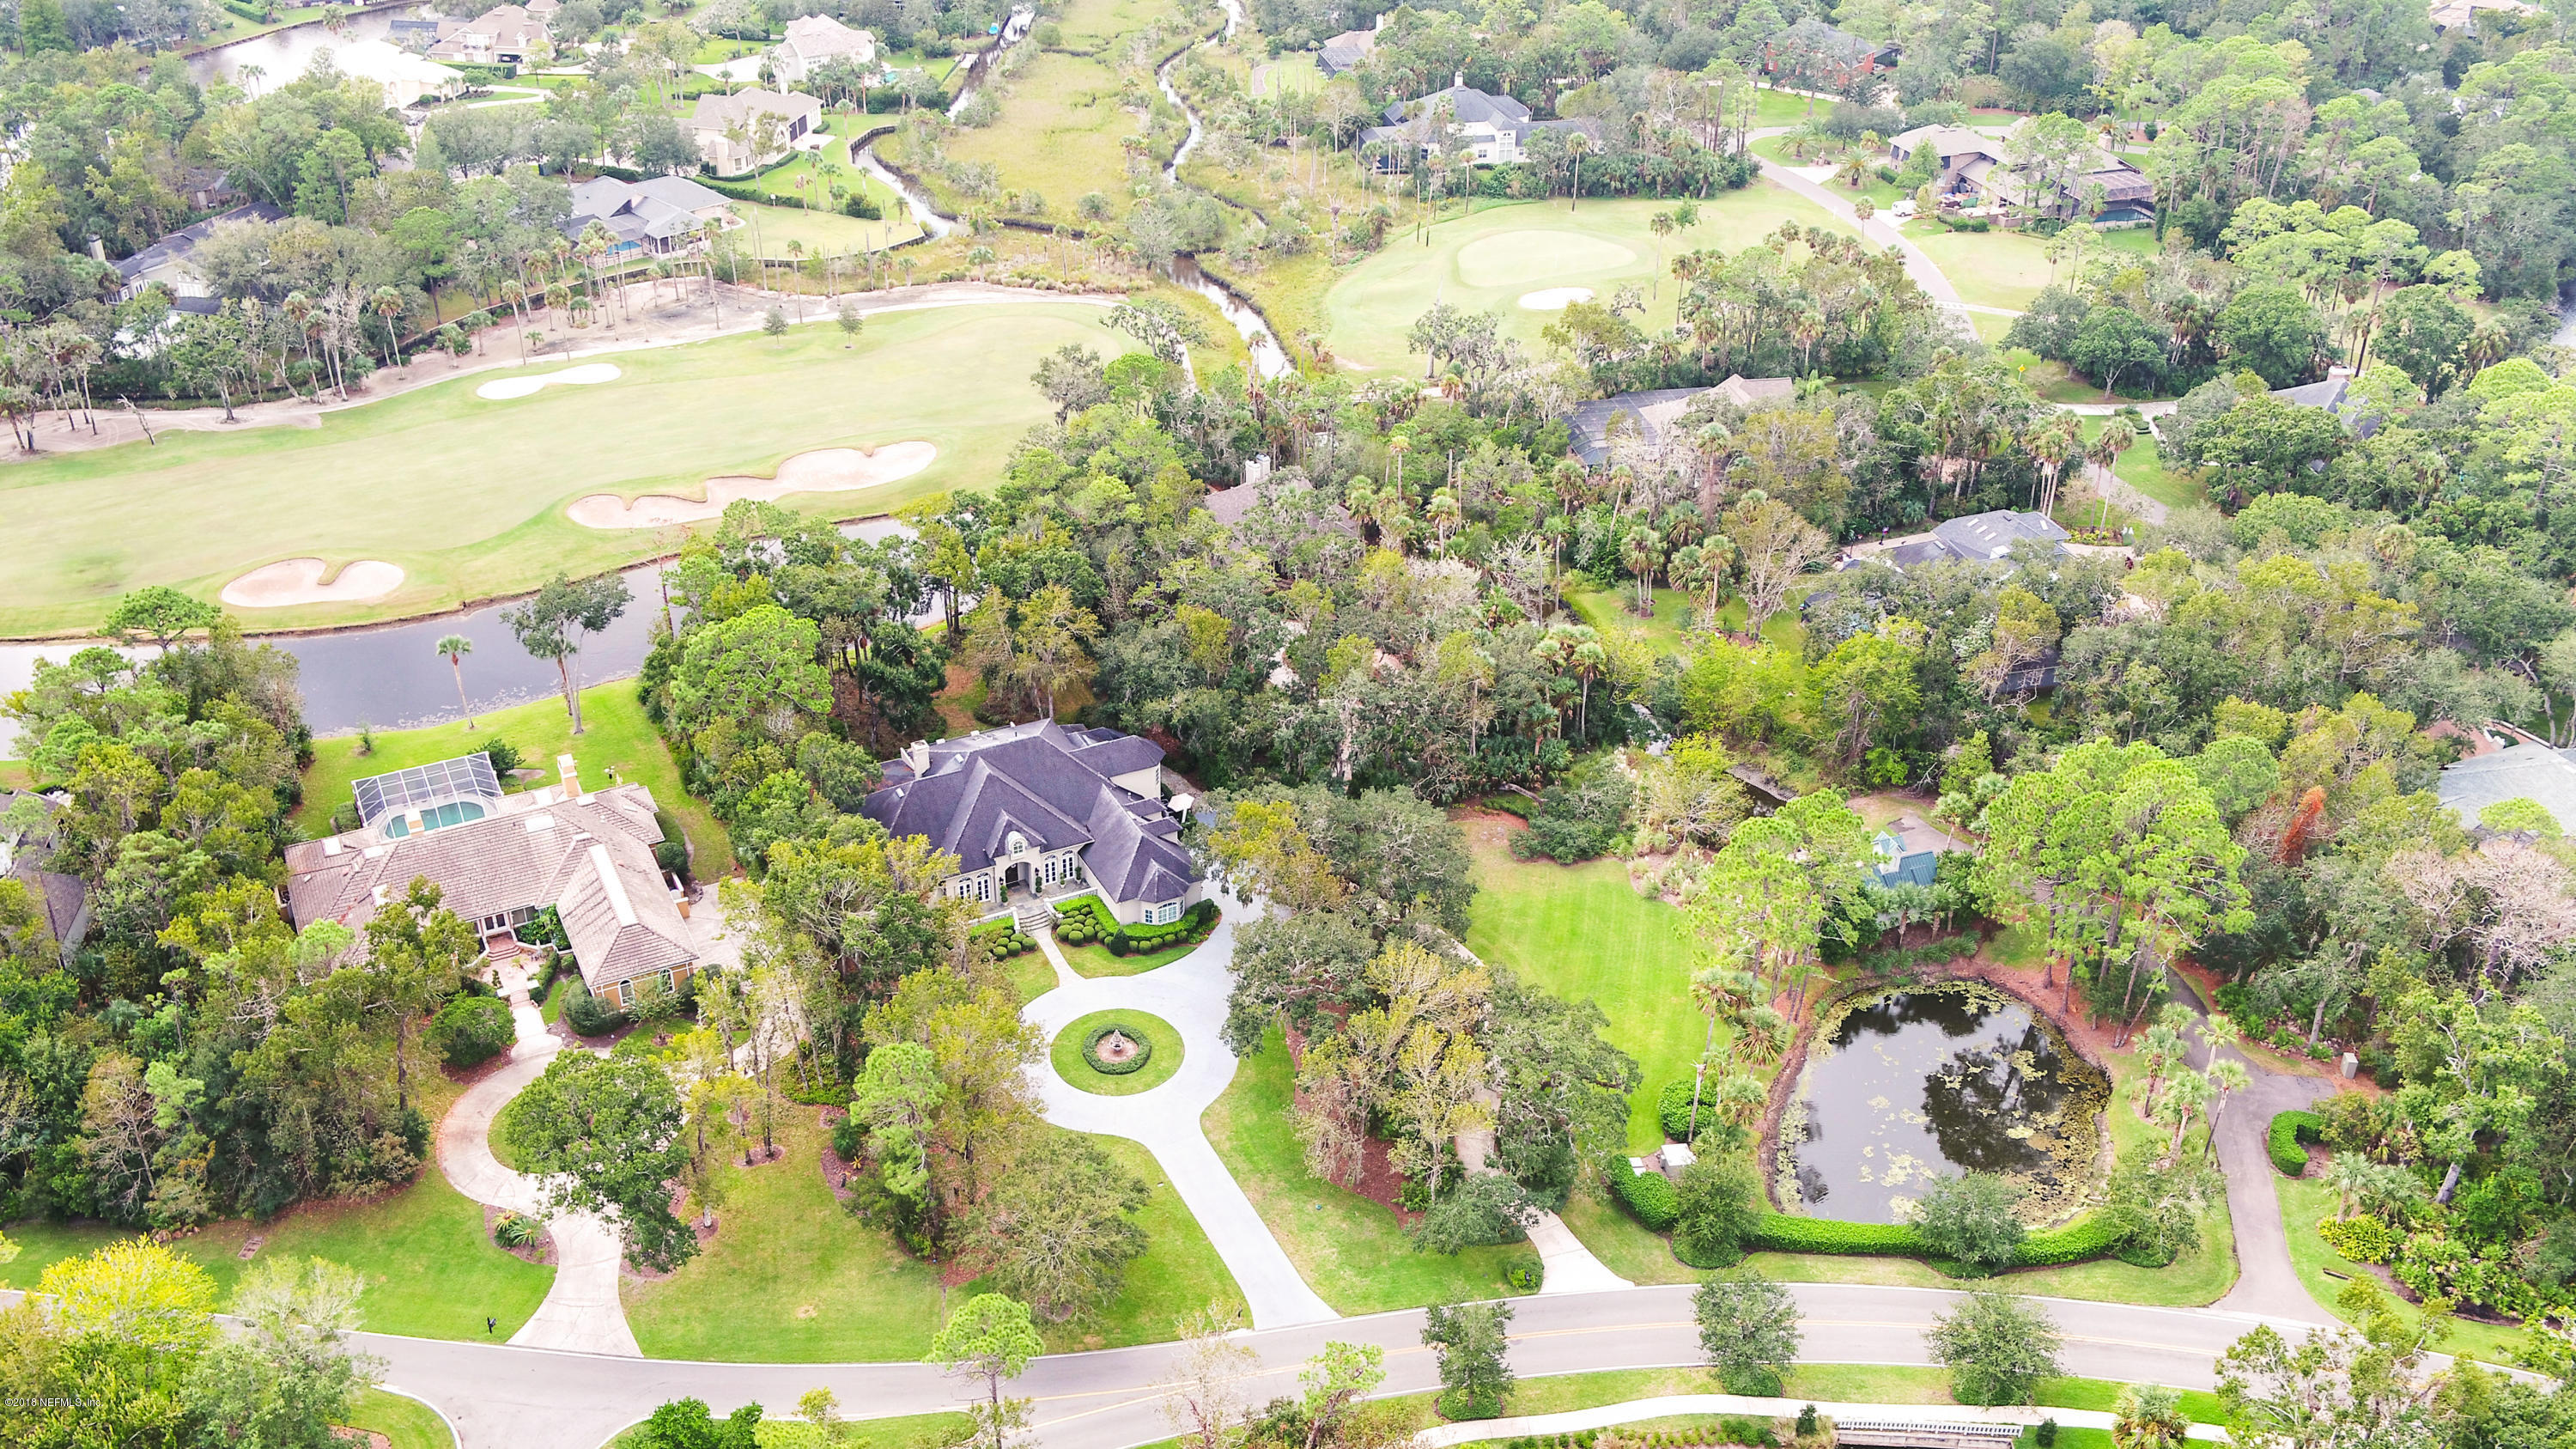 25005 MARSH LANDING, PONTE VEDRA BEACH, FLORIDA 32082, 4 Bedrooms Bedrooms, ,5 BathroomsBathrooms,Residential - single family,For sale,MARSH LANDING,963778